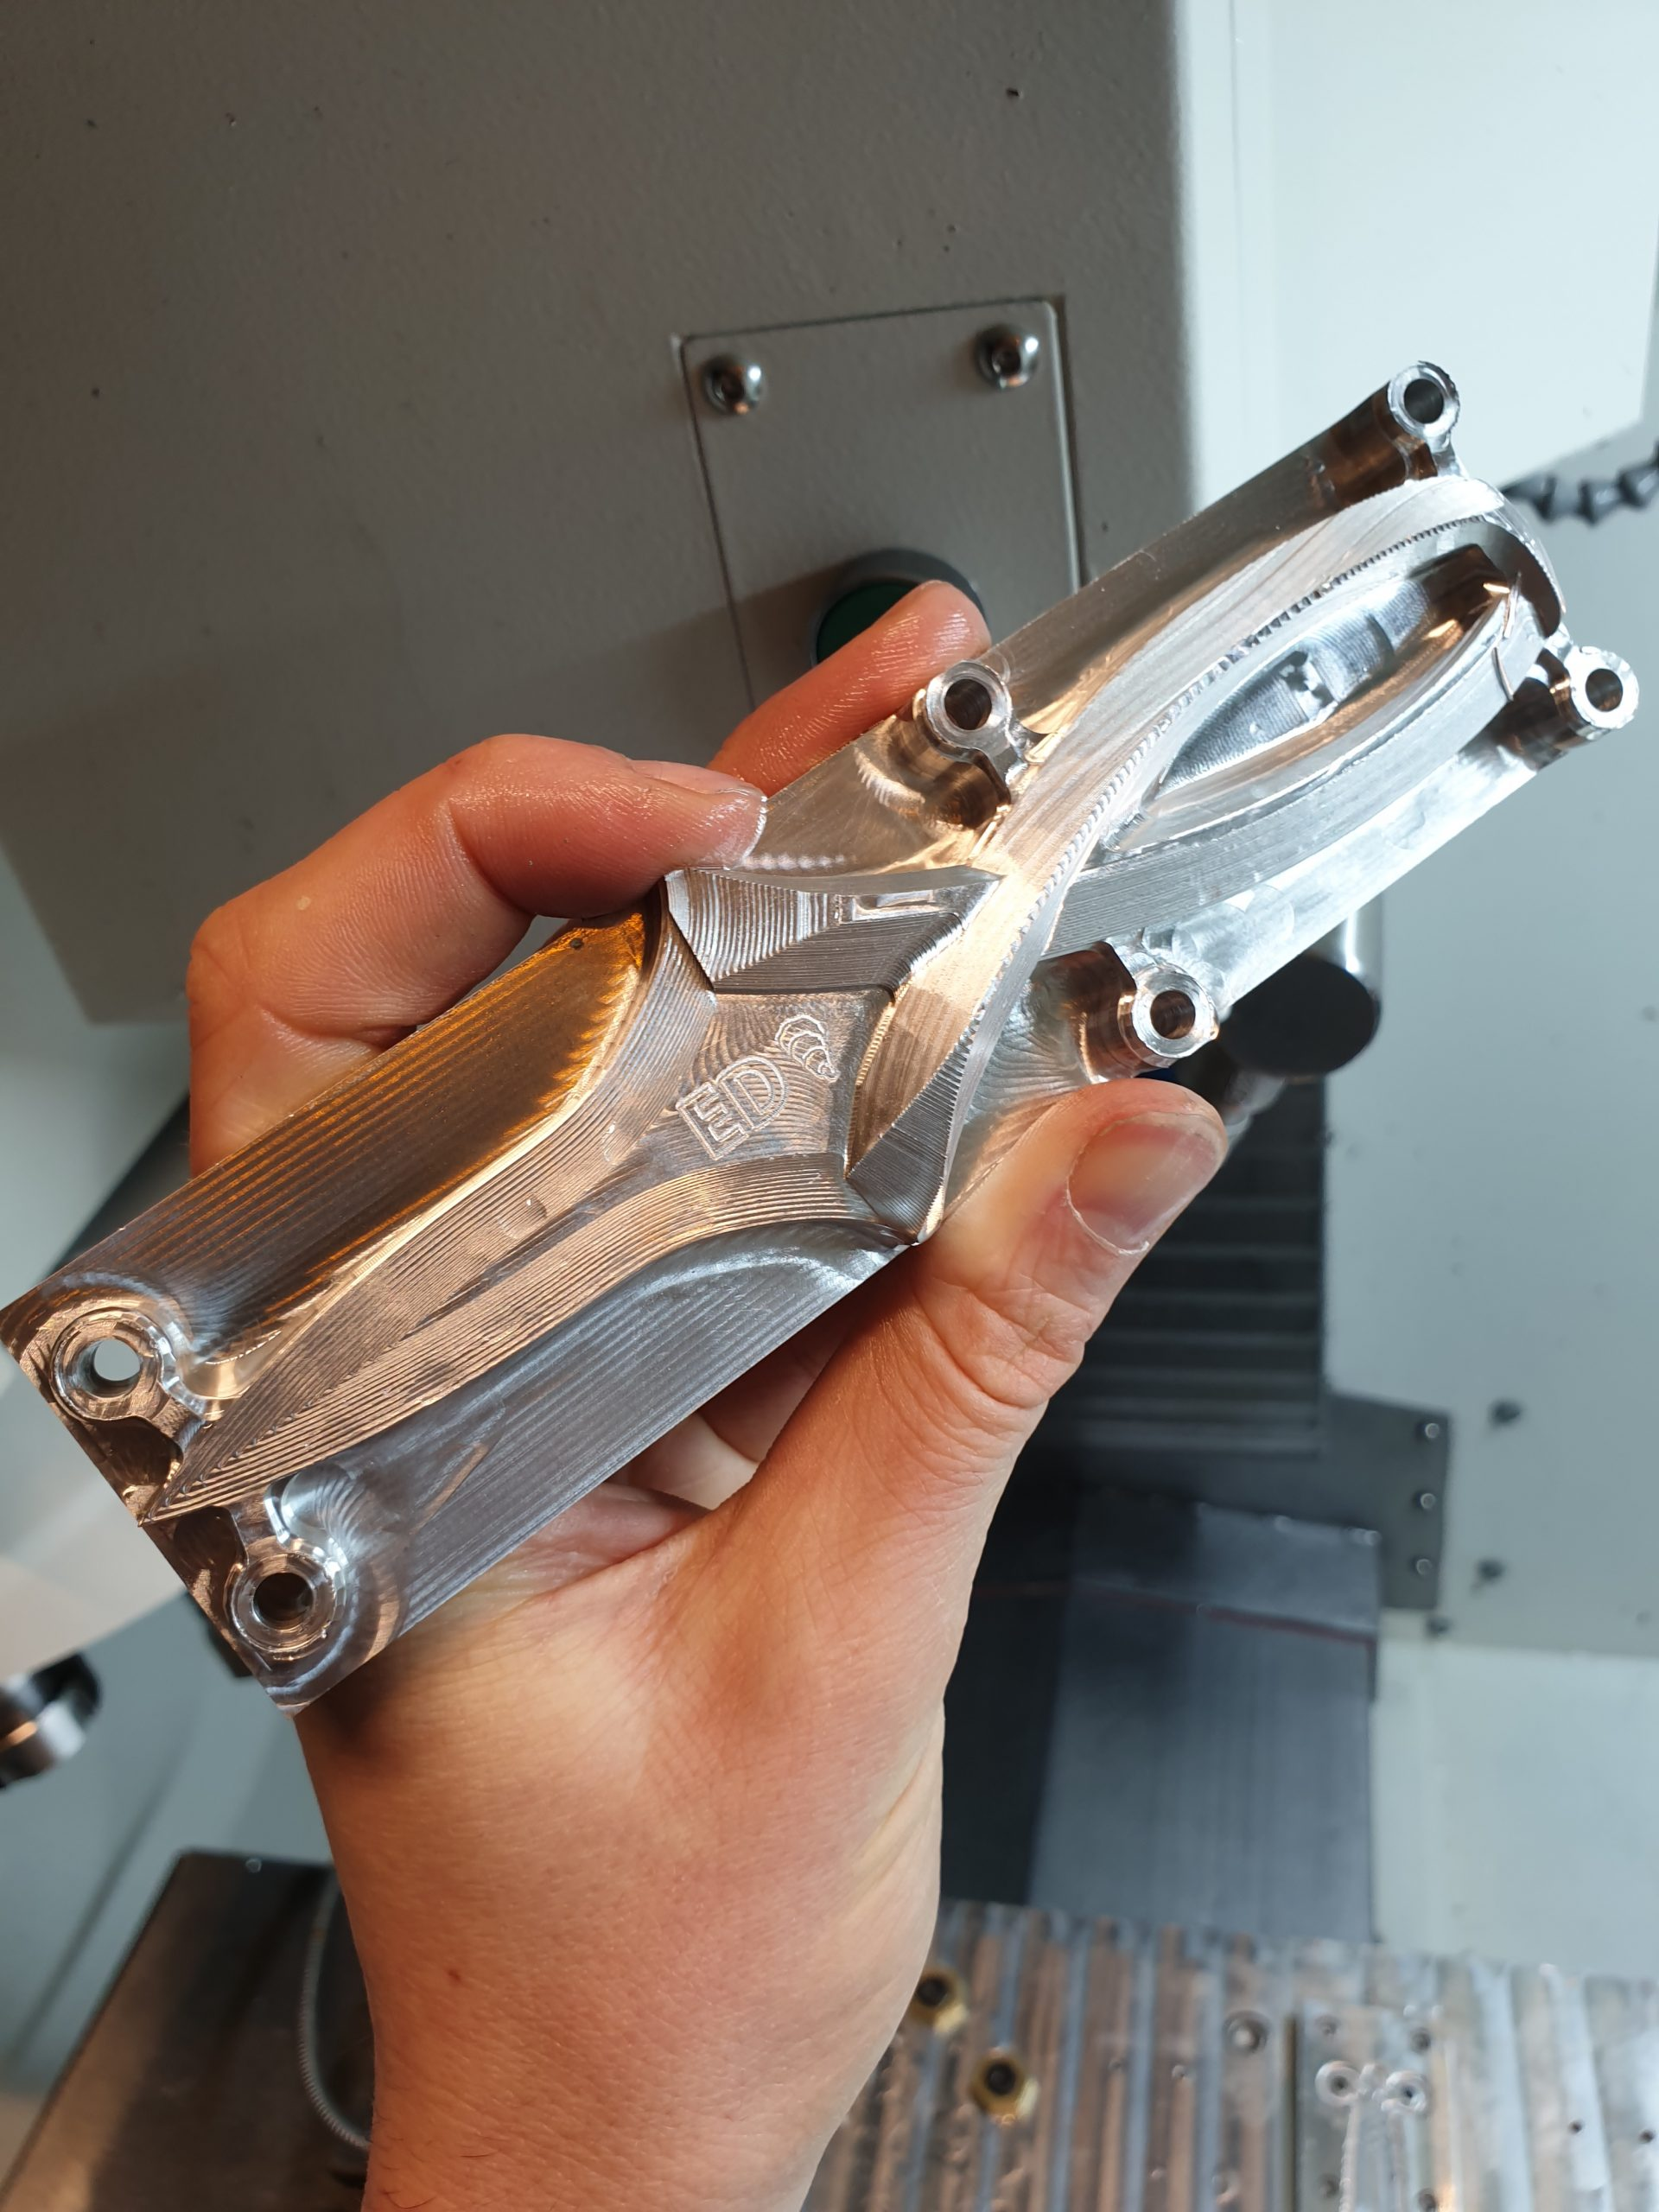 The Syil X7-20 CNC milling machine is used to make this Aluminium prototype of the ''Hugo'' Oyster opening tool.